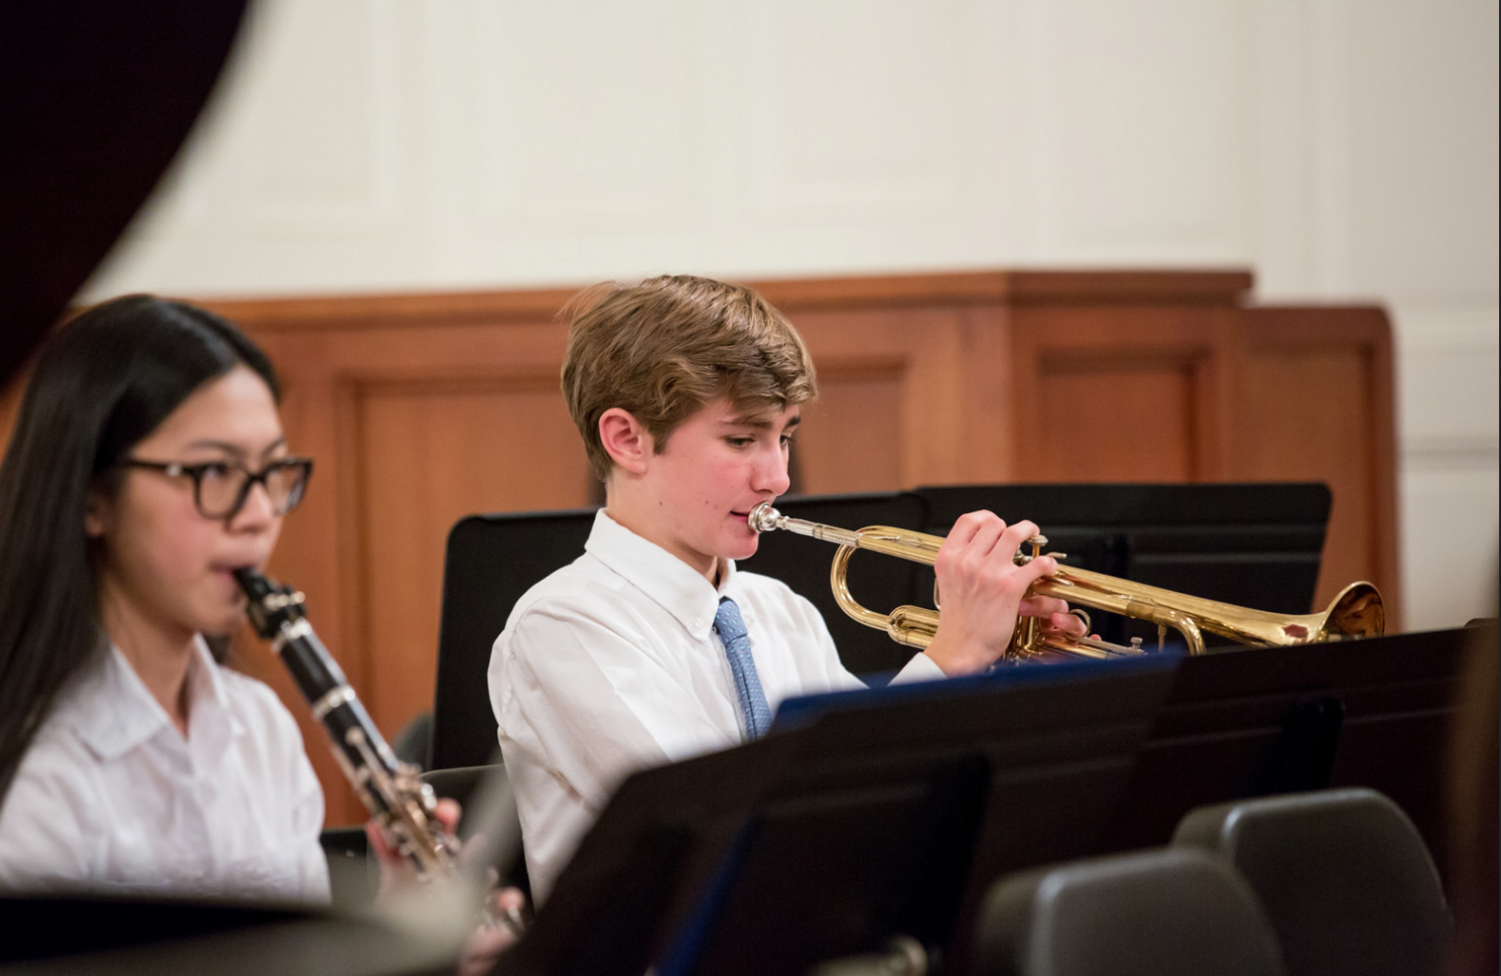 Nat Markey '20 playing in the 2016 Fall Instrumental Concert. Credit: Williston Flickr.